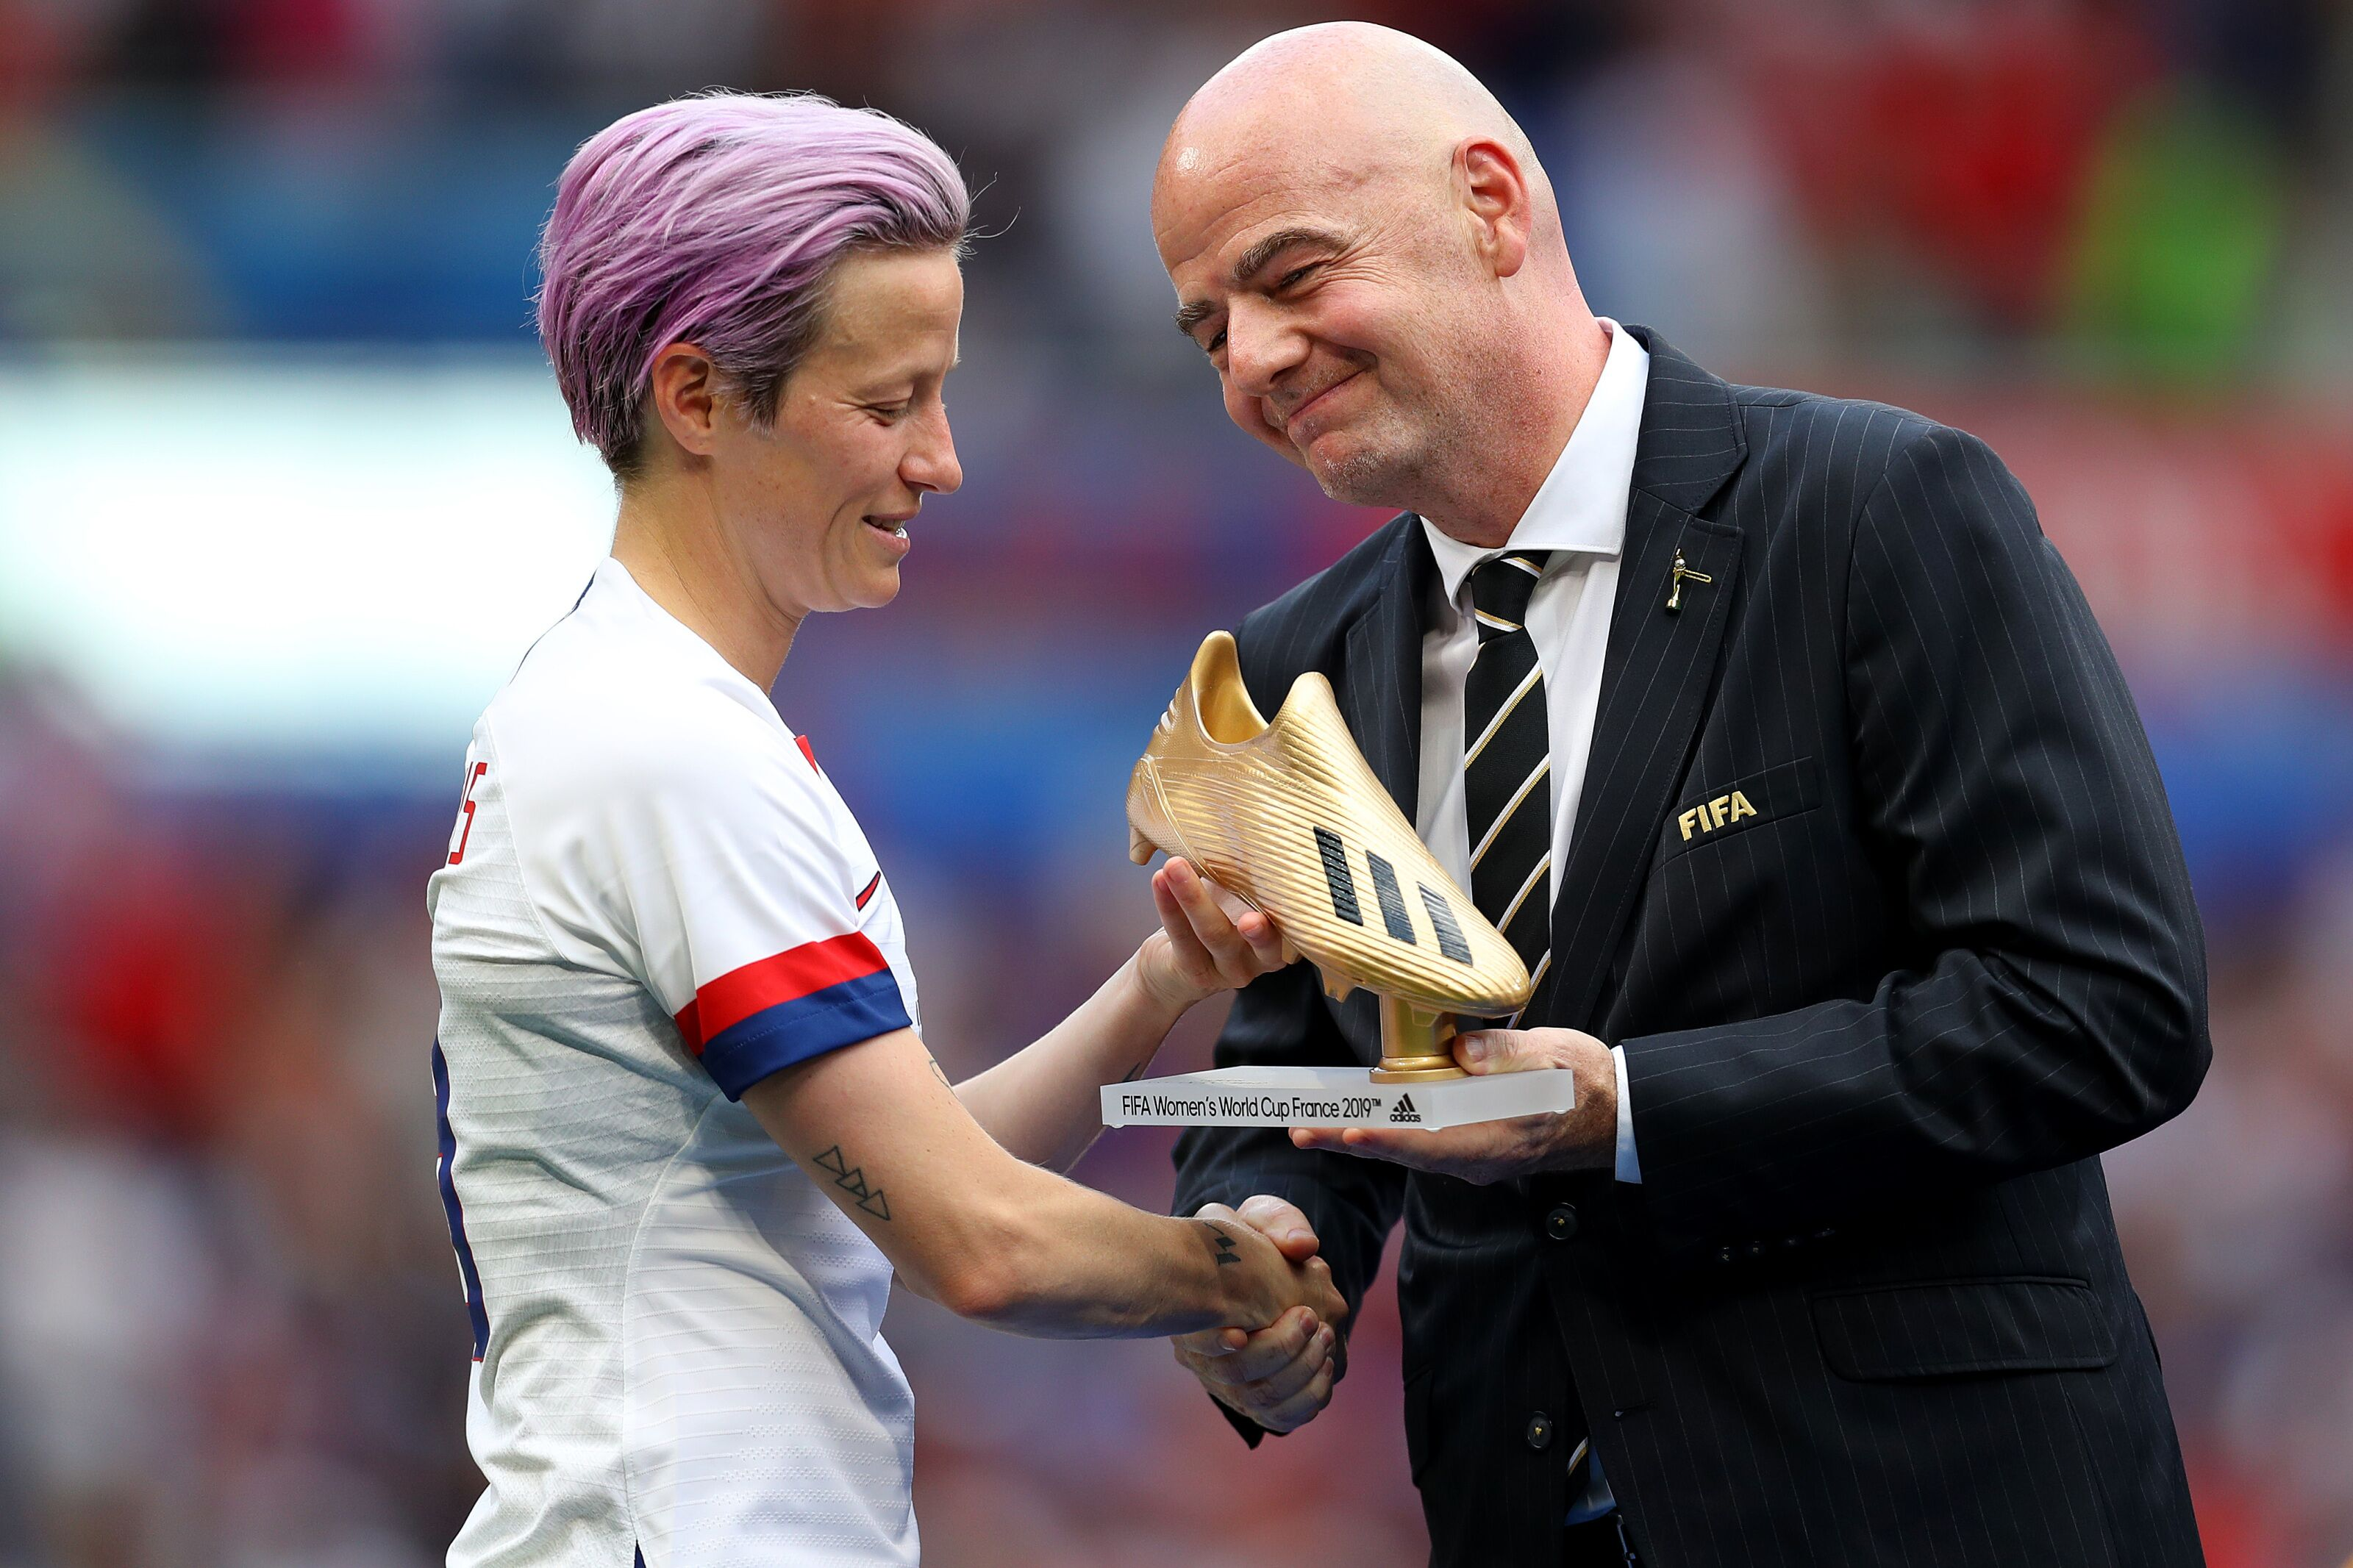 Forget FIFA, USWNT should spearhead separate football organization